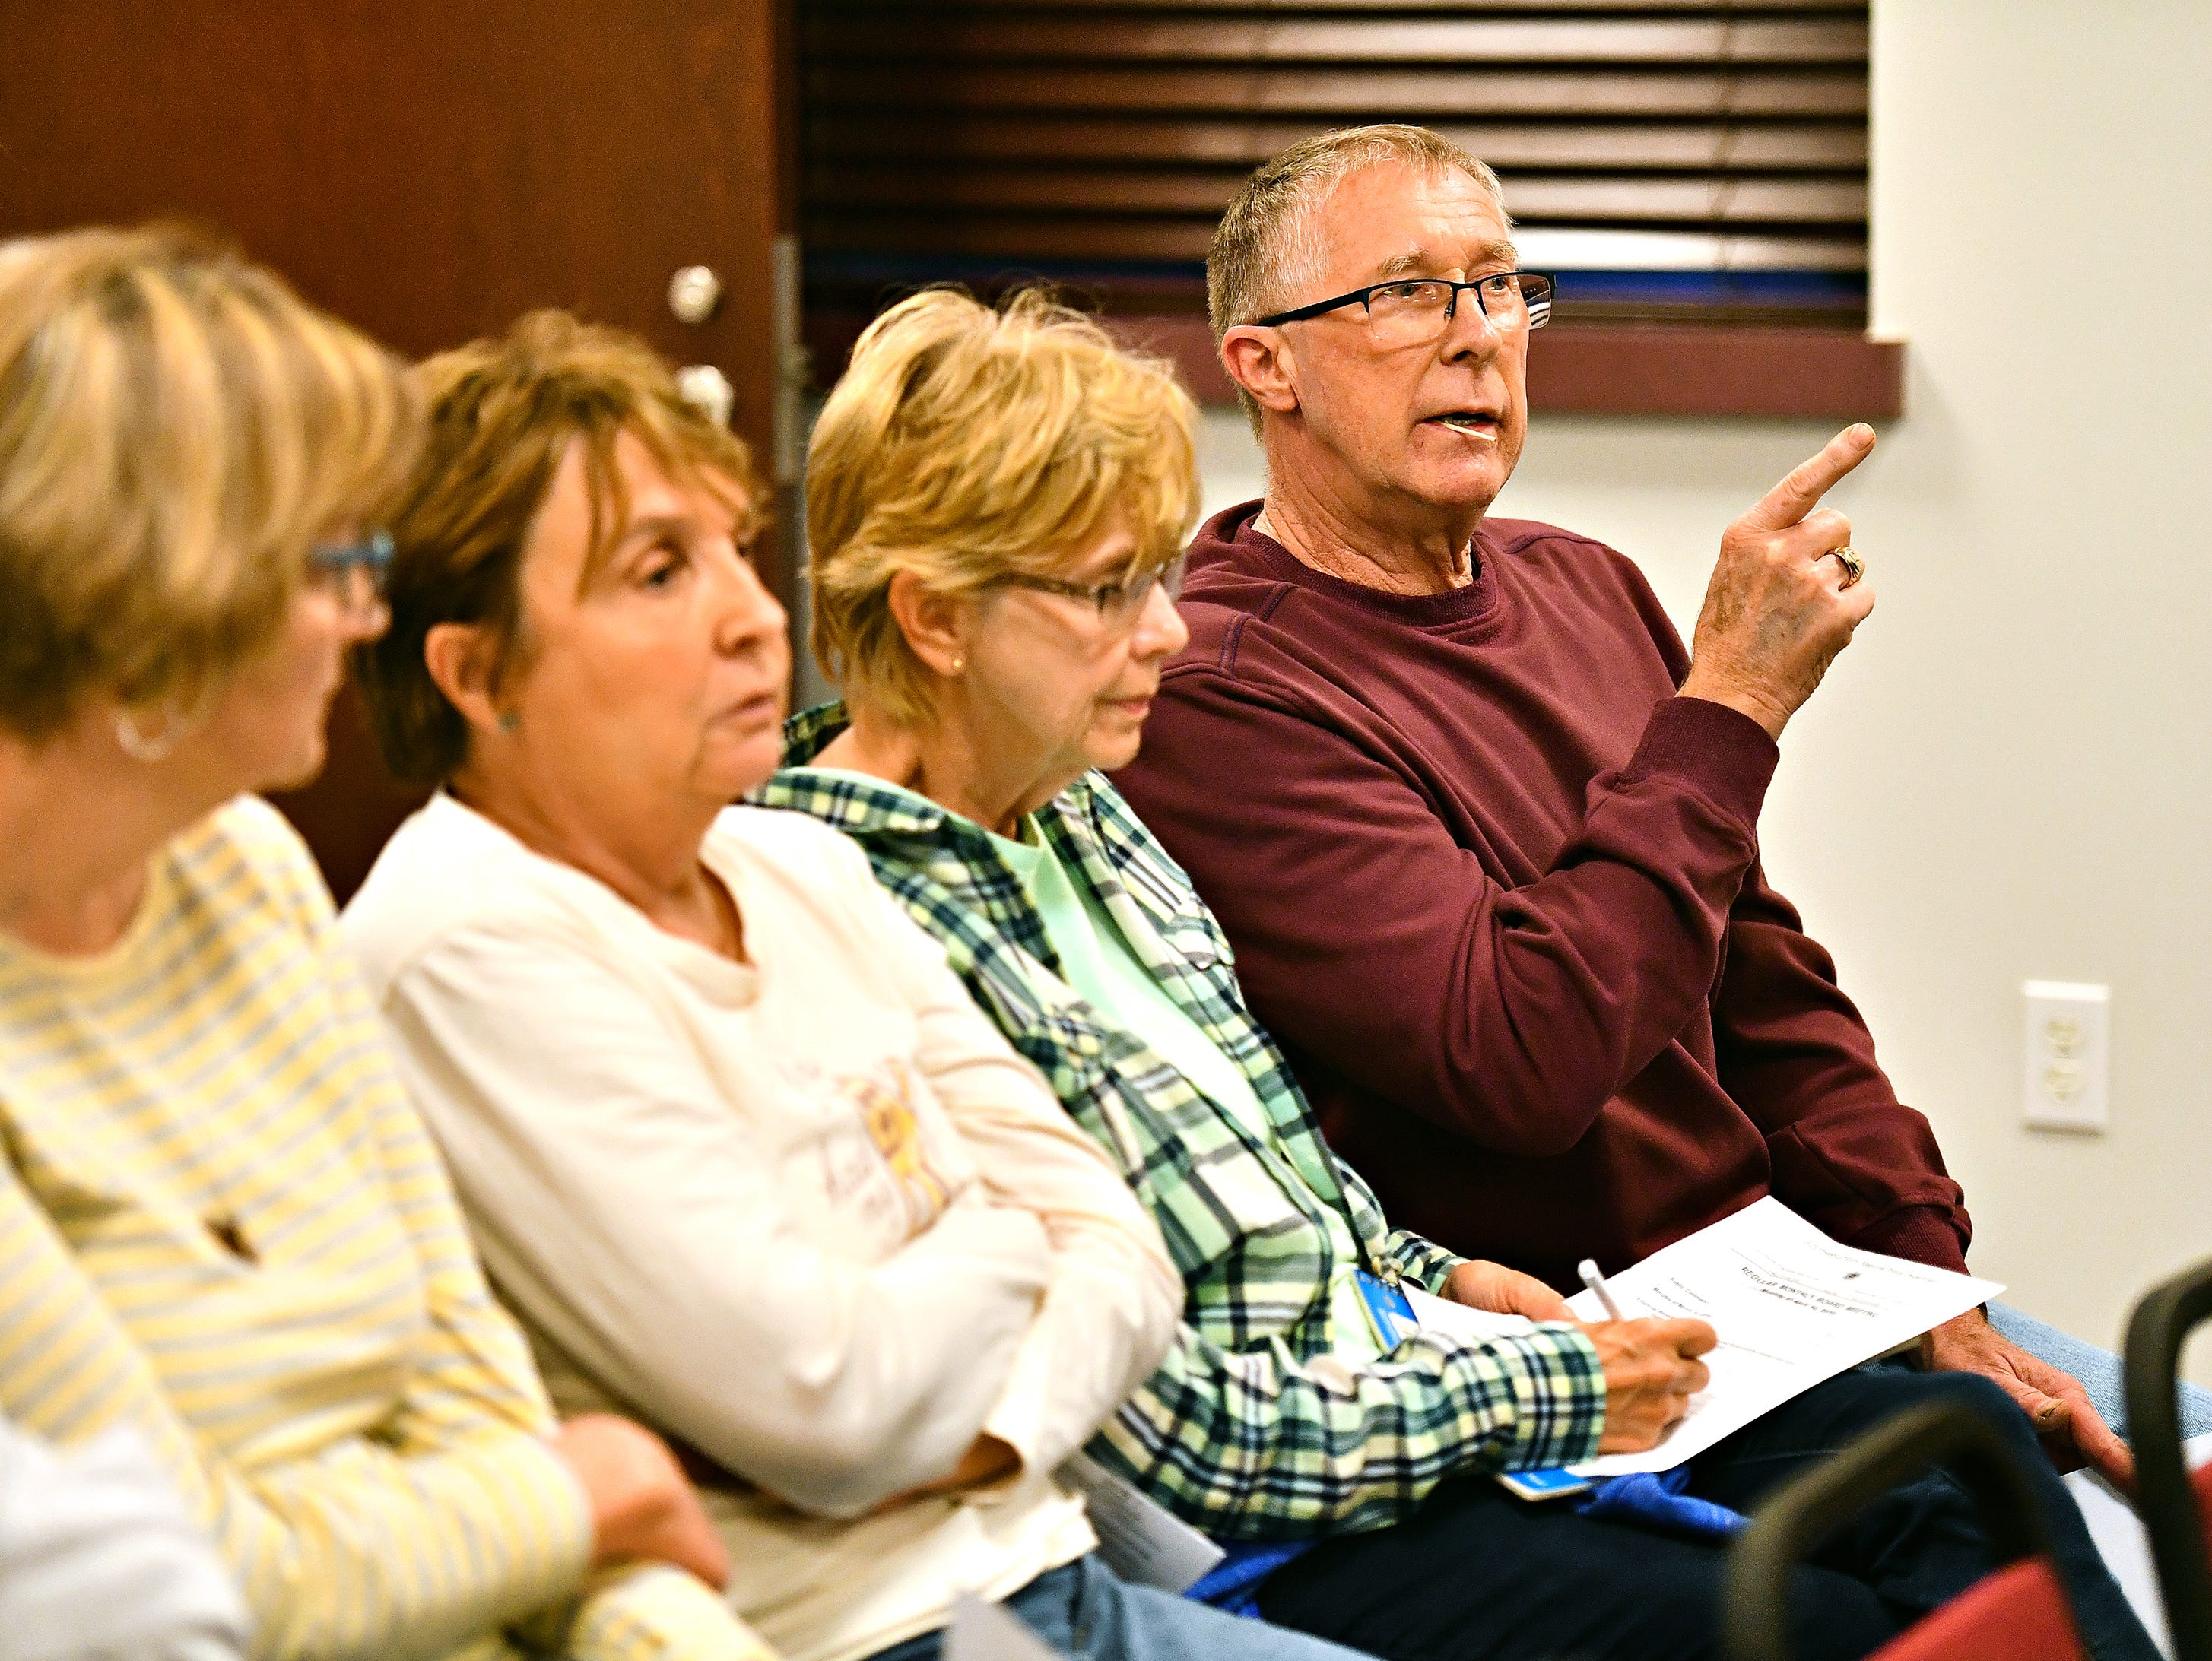 Larry Lehman, of North Codorus Township, speaks during the public comment portion of Southwestern Regional Police Department's monthly board meeting at the station in Heidelberg Township, Wednesday, April 10, 2019. Dawn J. Sagert photo